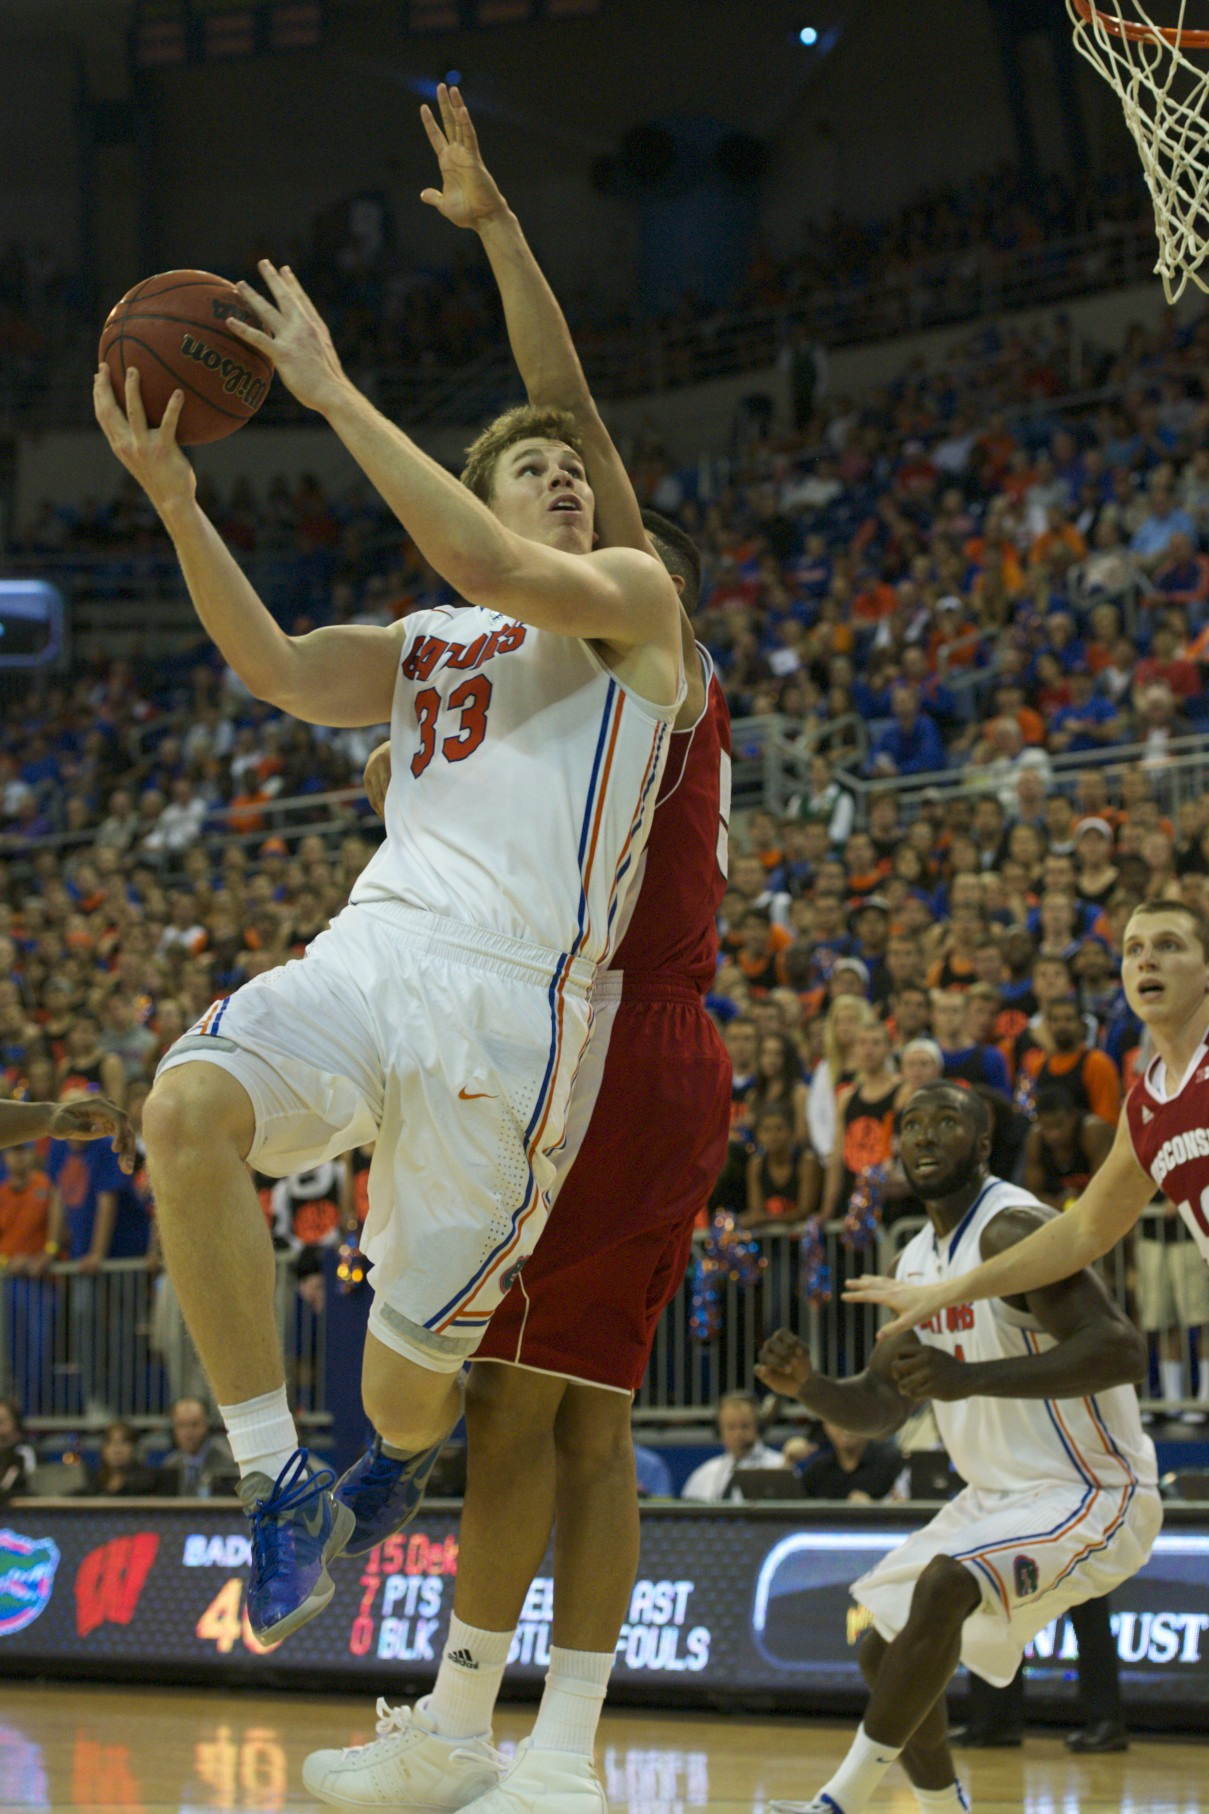 Erik Murphy (33) puts up a lay up for the Florida Gators in the second half of Wednesday's game.